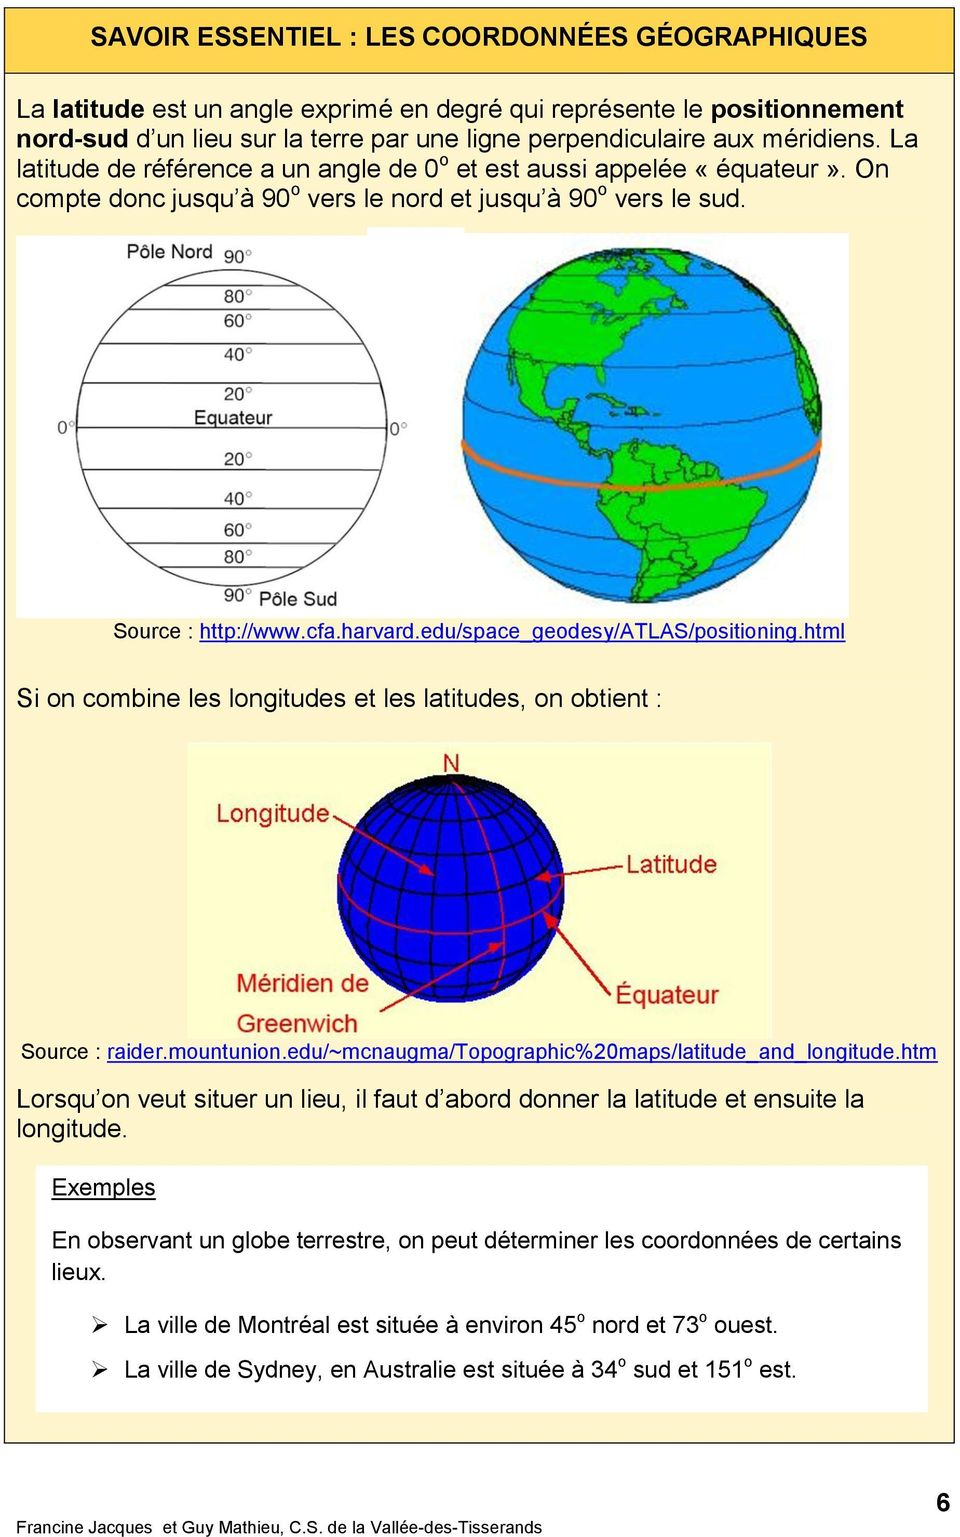 edu/space_geodesy/atlas/positioning.html Si on combine les longitudes et les latitudes, on obtient : Source : raider.mountunion.edu/~mcnaugma/topographic%20maps/latitude_and_longitude.